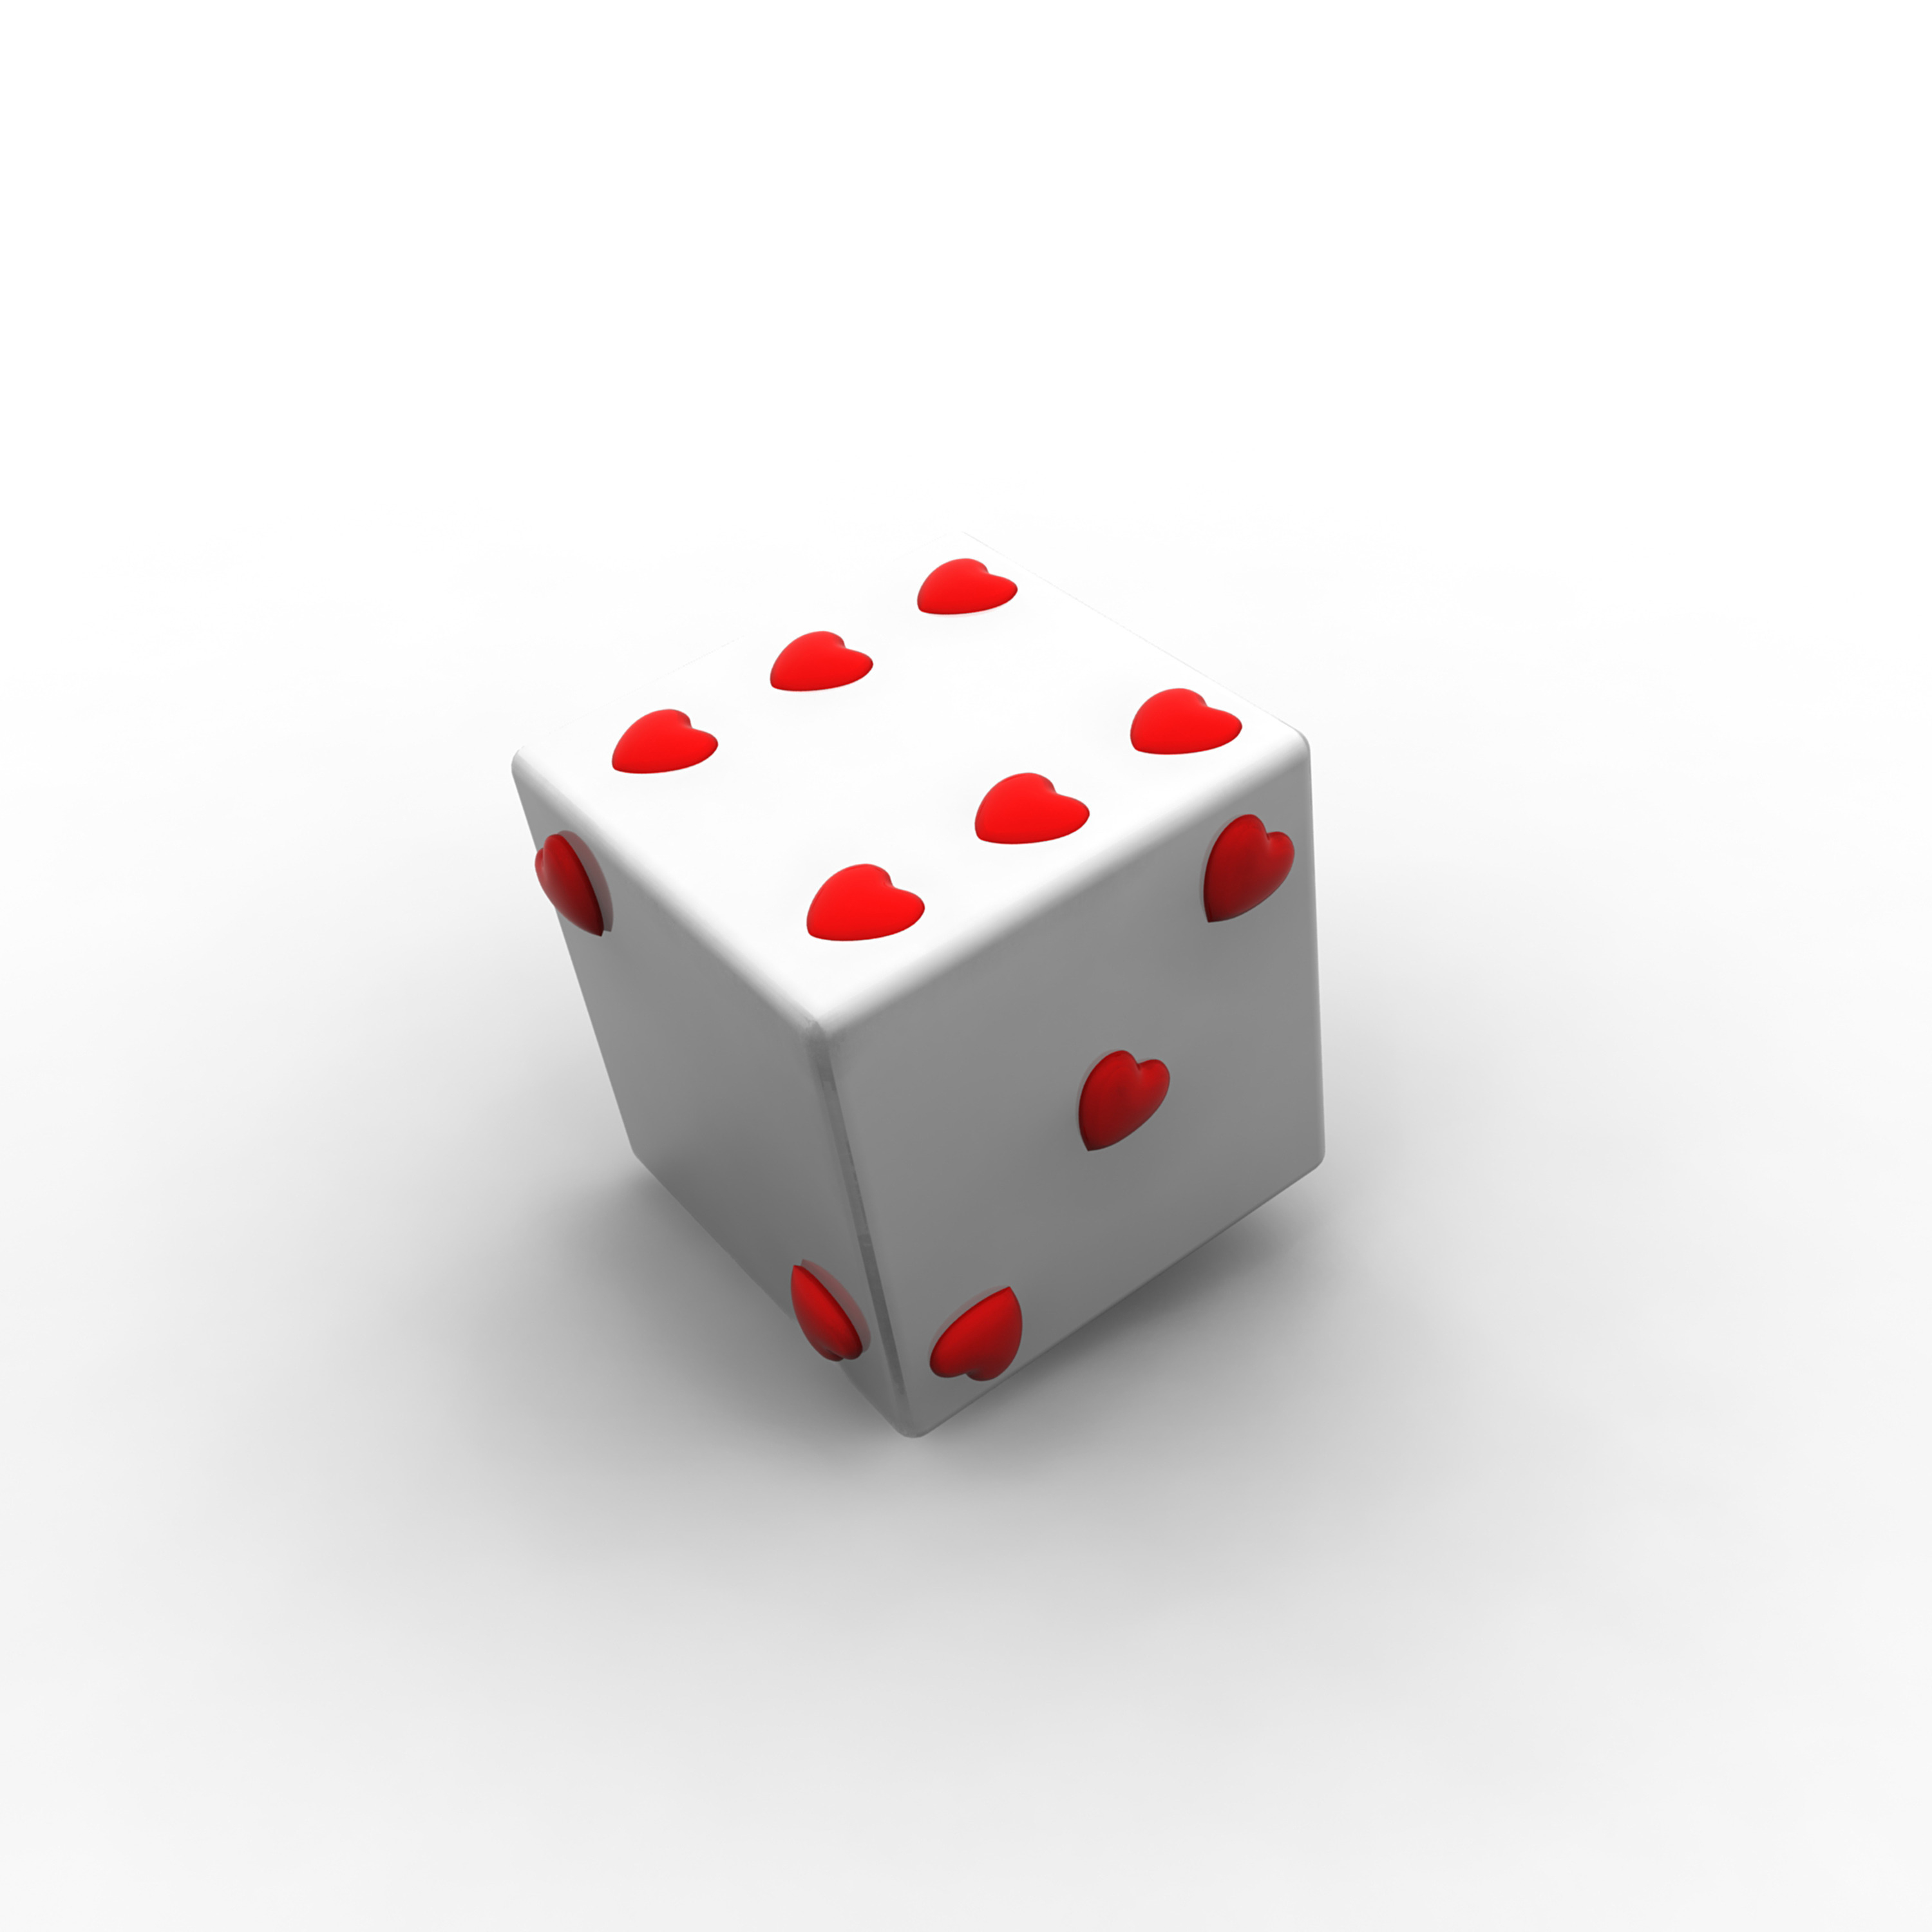 dice-style-cube-with-heart-pattern_fkc9iioo